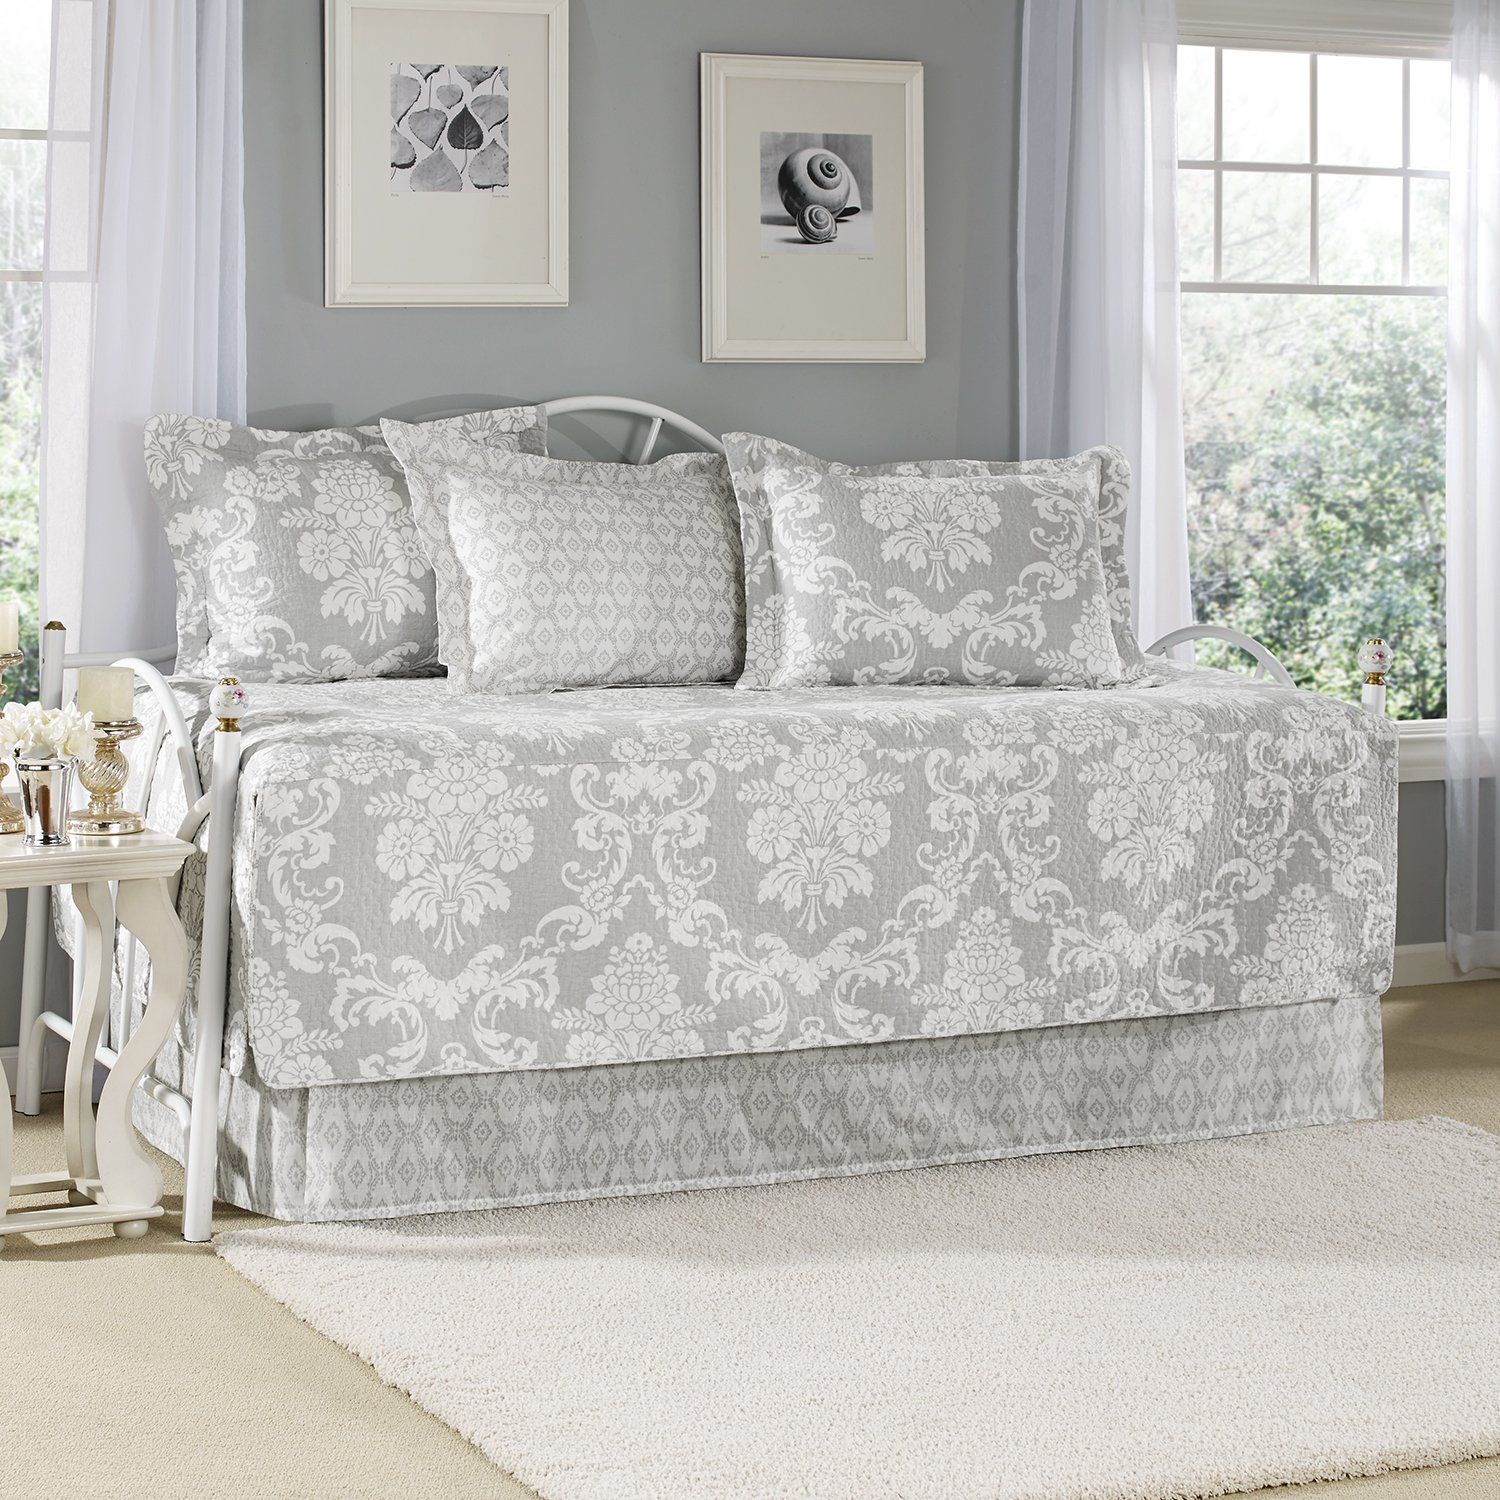 Amazon com  Laura Ashley 5 Piece Venetia Daybed Cover Set  Gray  Home    Kitchen. Amazon com  Laura Ashley 5 Piece Venetia Daybed Cover Set  Gray